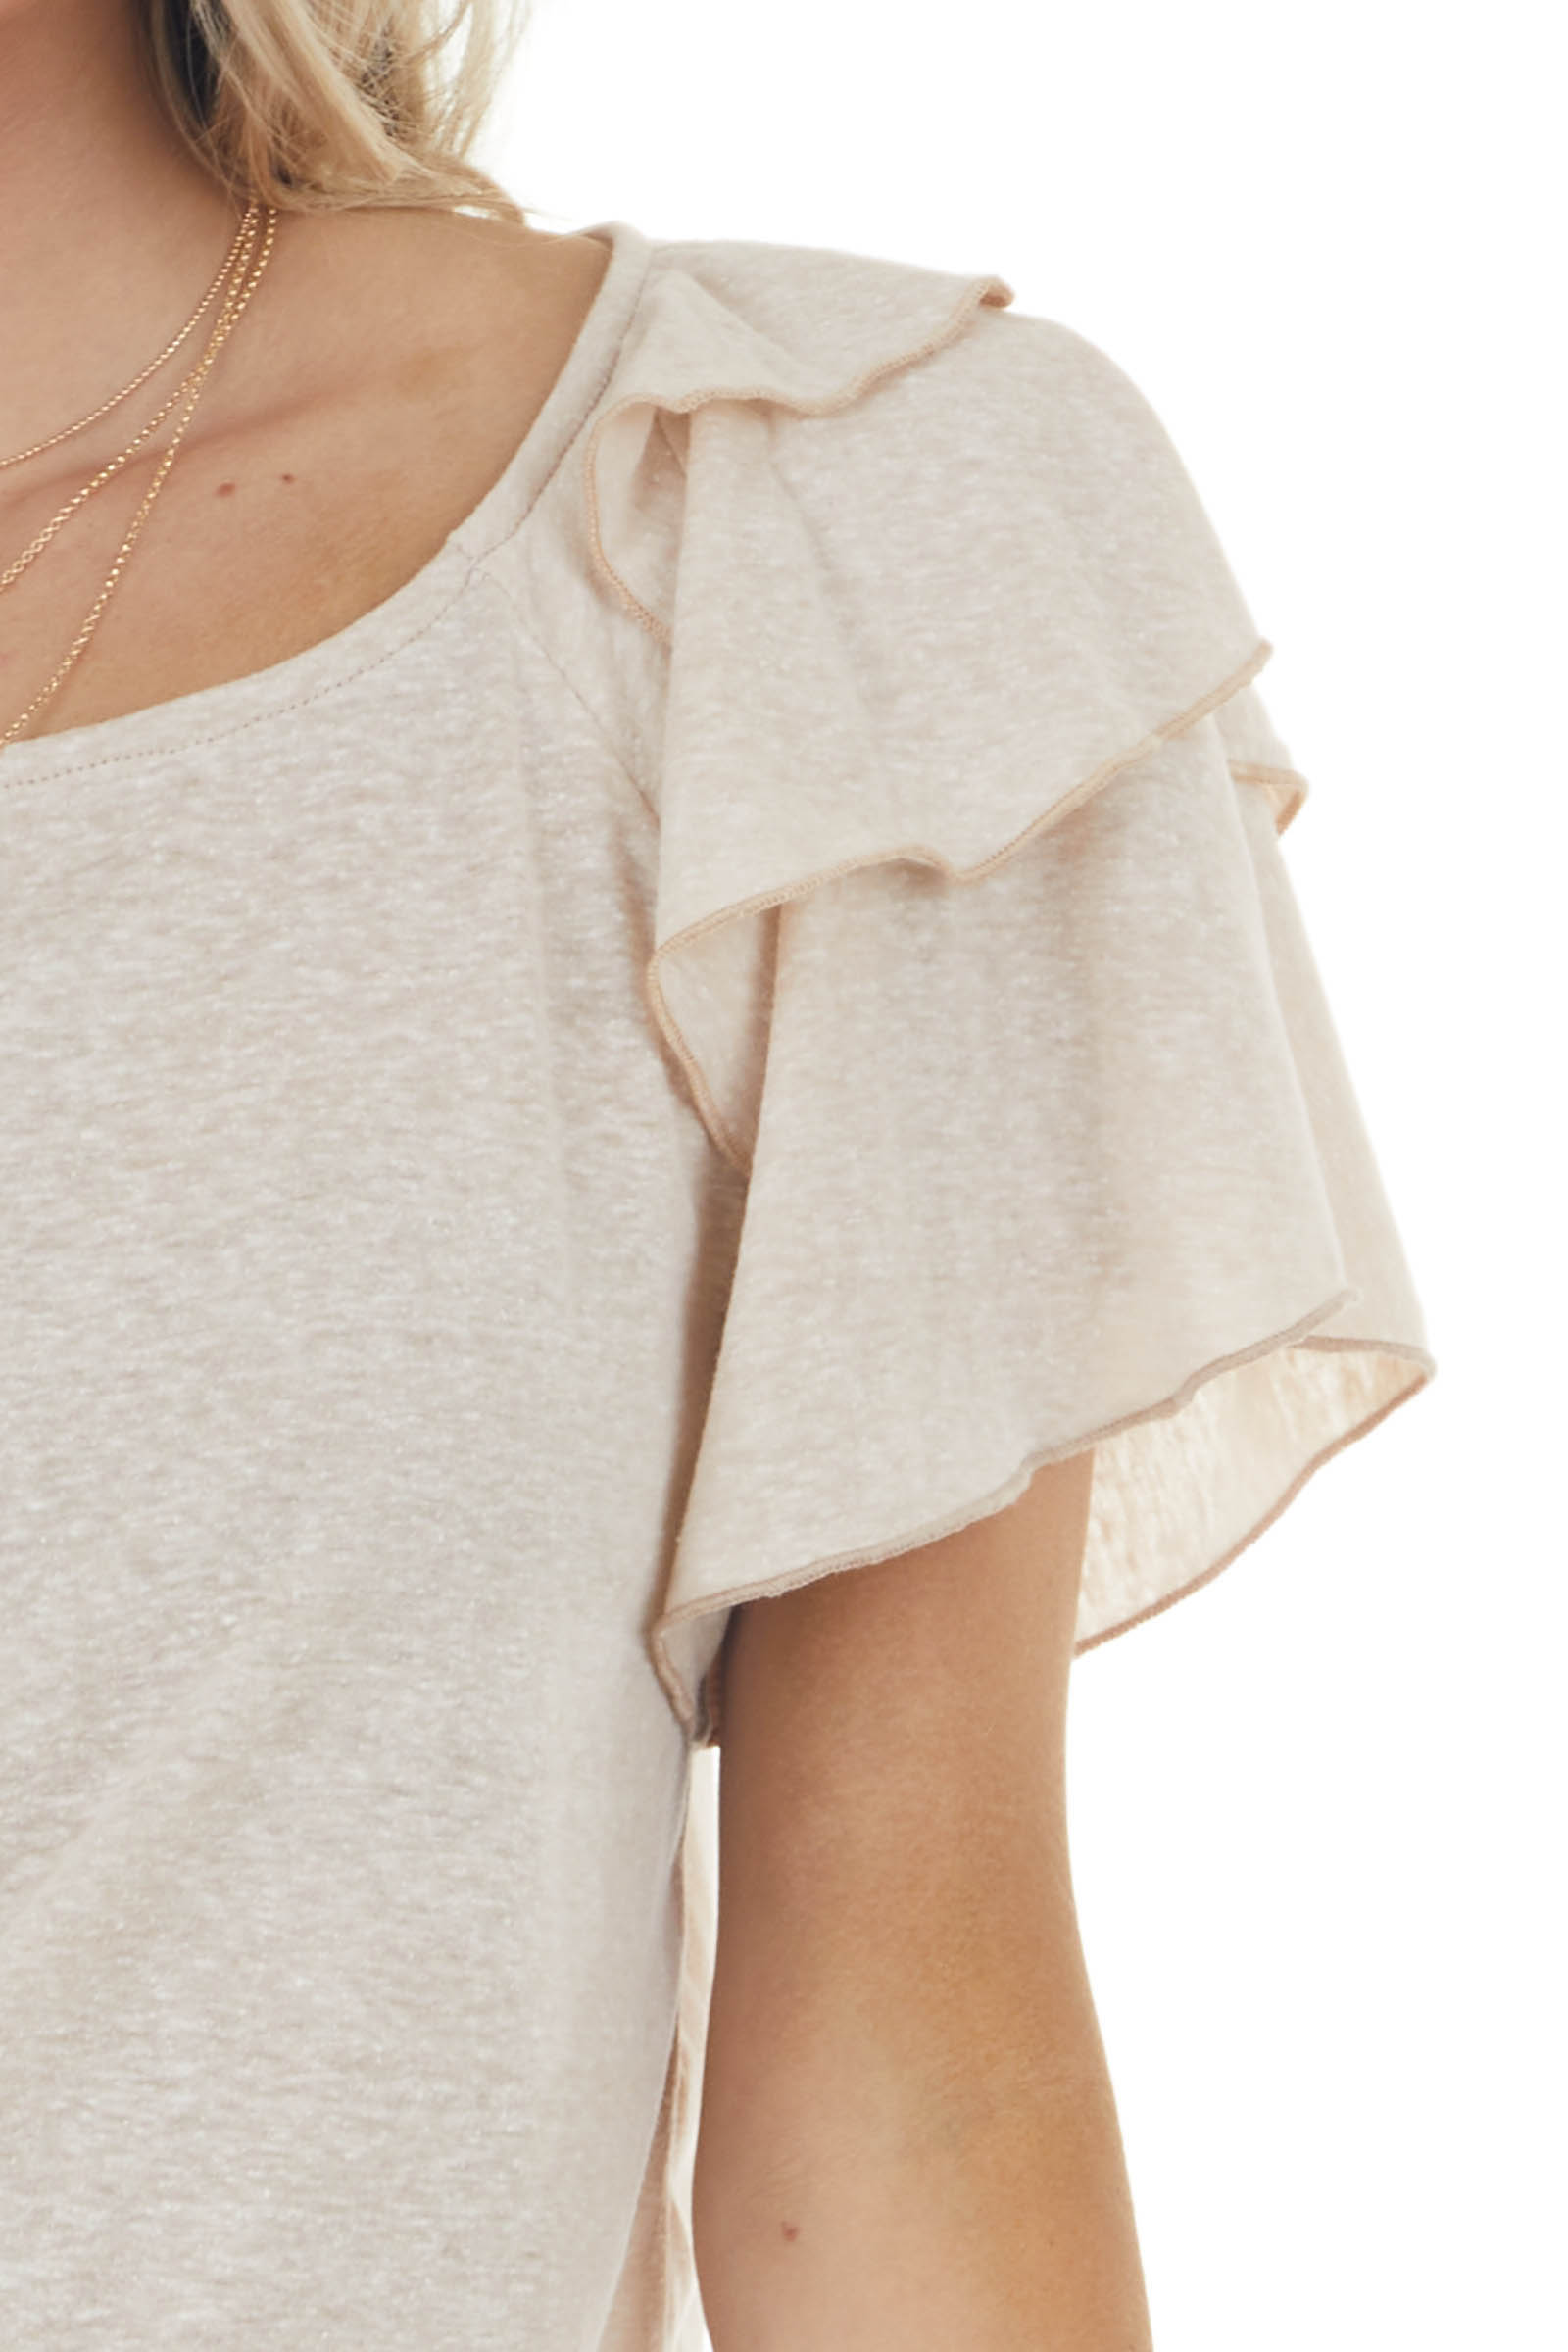 Desert Sand Knit Top with Short Layered Ruffle Sleeves